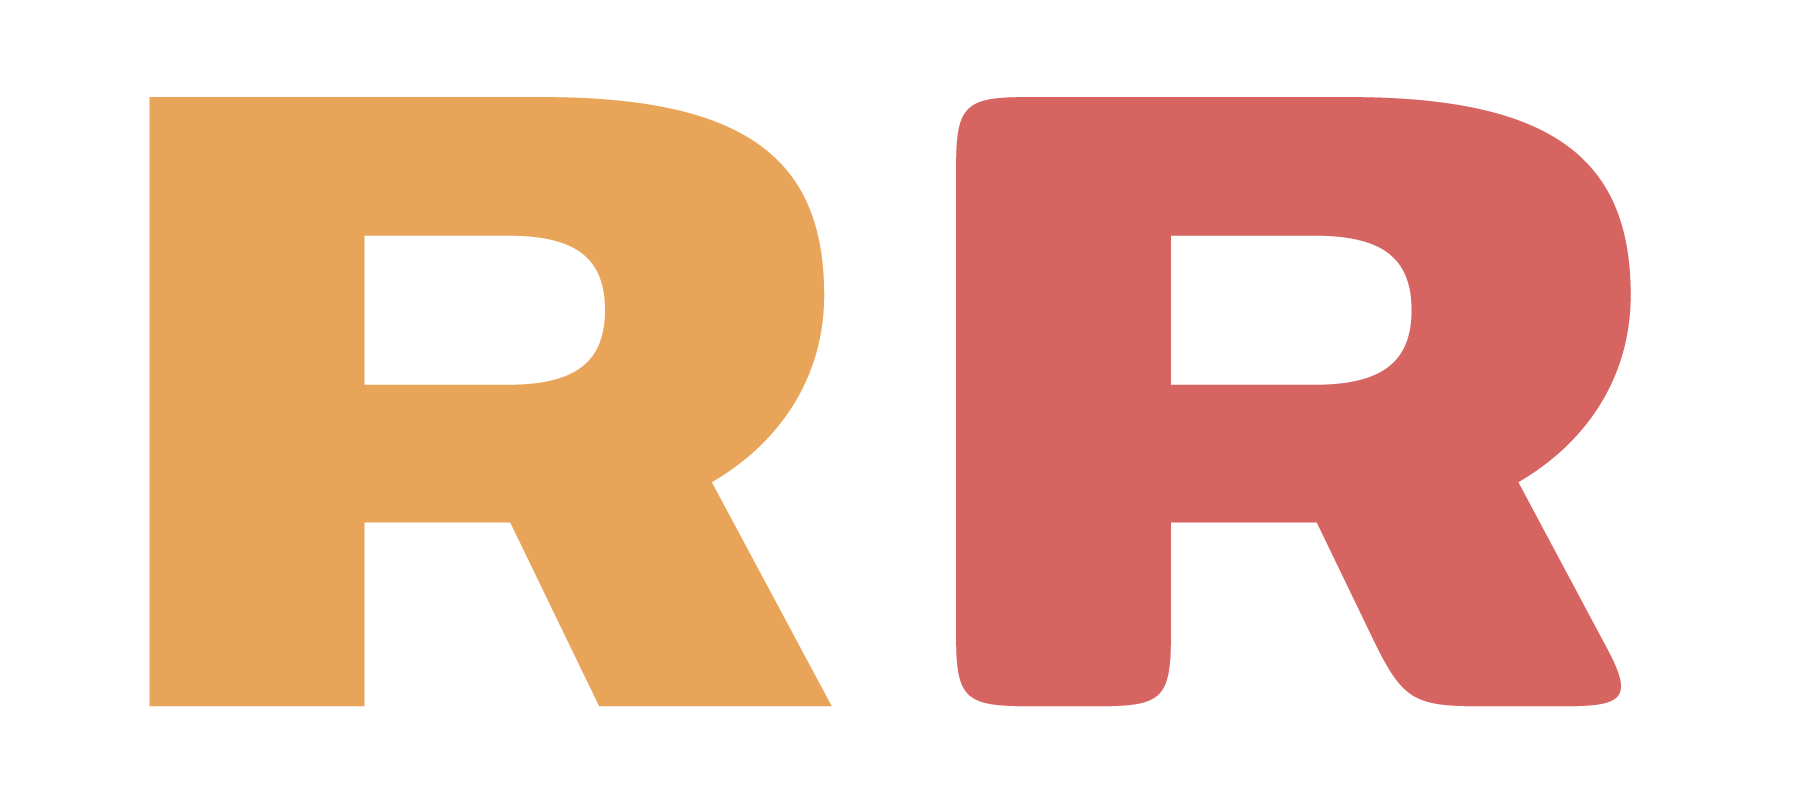 Non-rounded and Rounded versions of the 'R' from the extended semibold weight of SONIC Sans